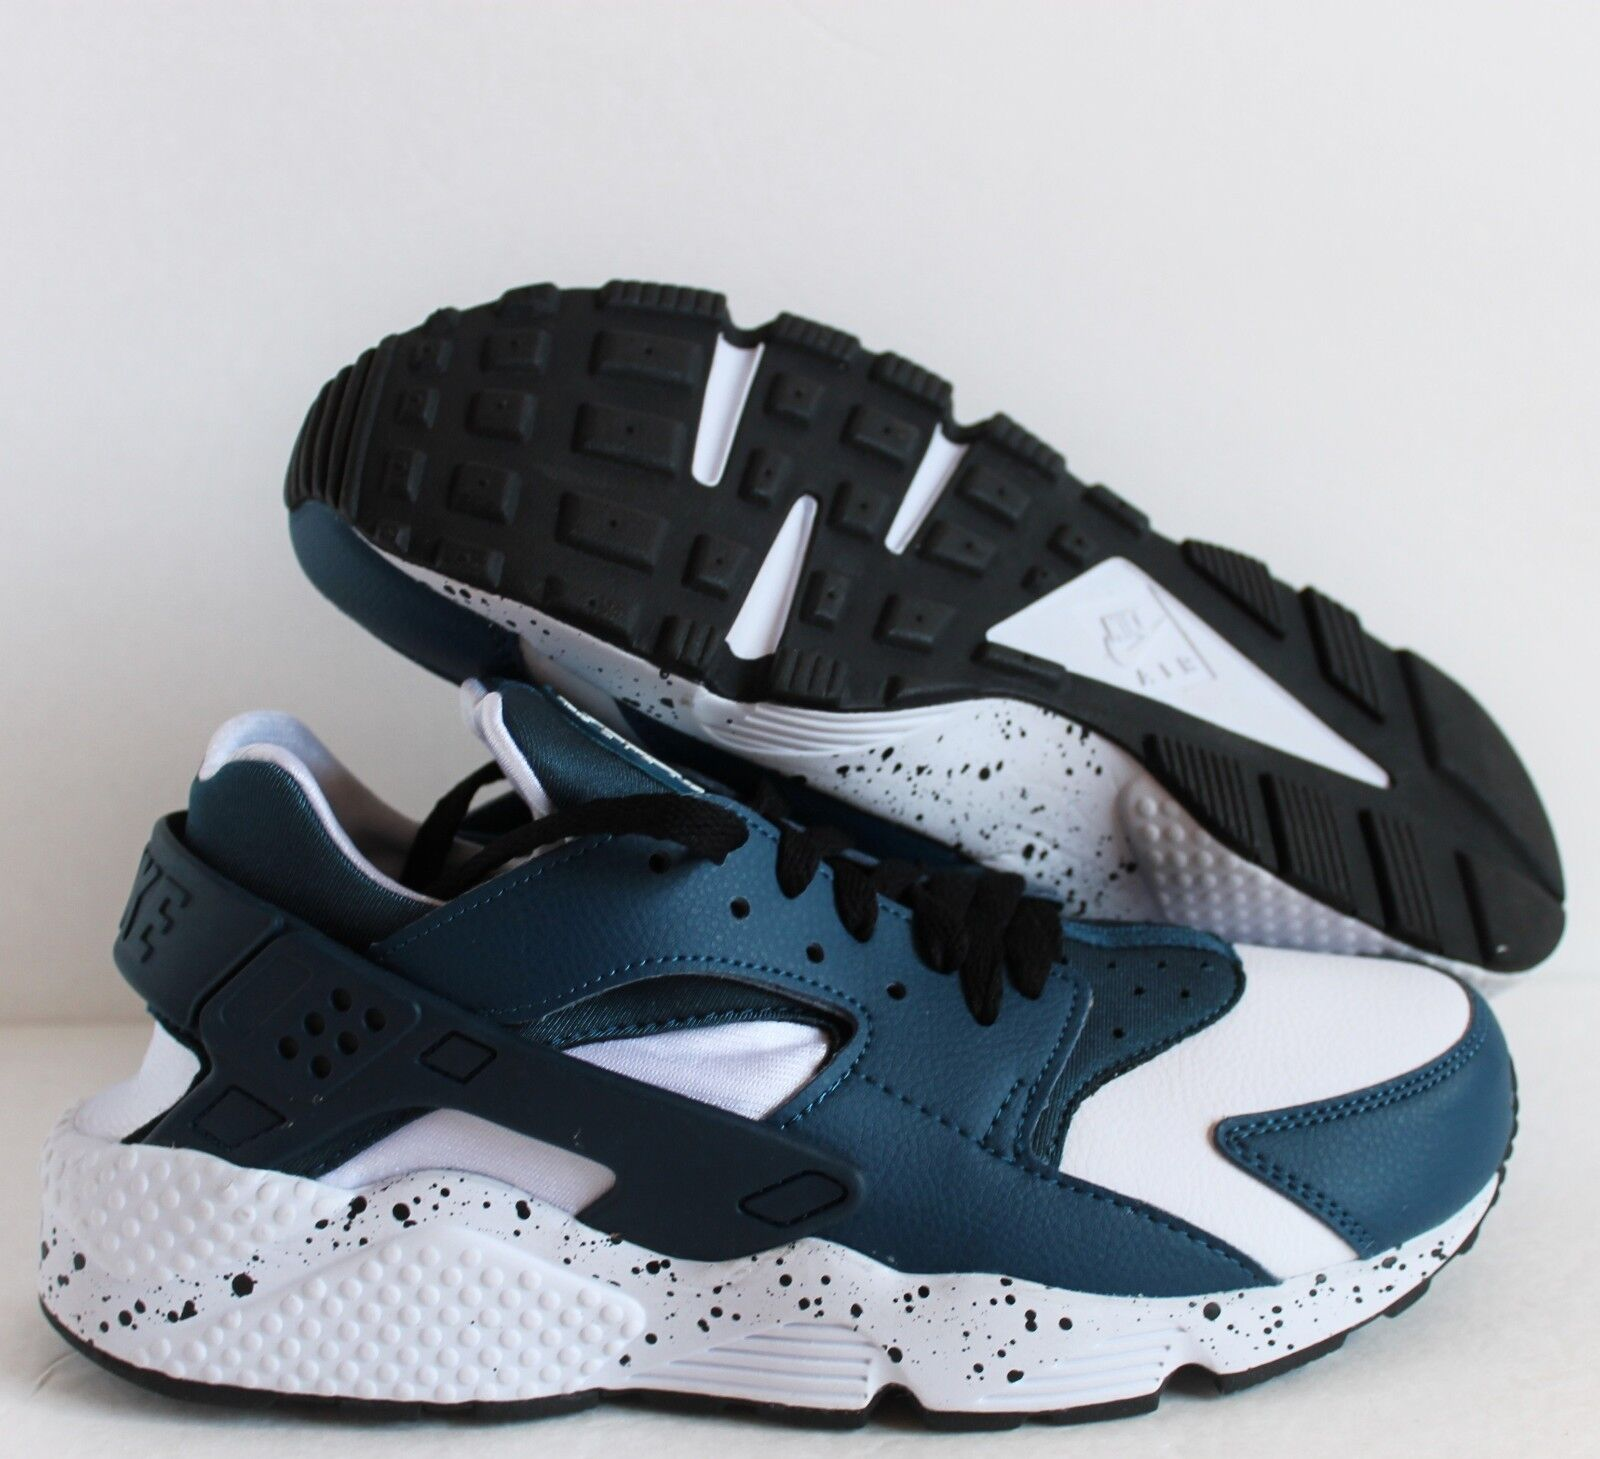 NIKE MEN SZ AIR HUARACHE PREMIUM ID BLUE-WHITE SZ MEN 8.5  [777330-992] c1029b